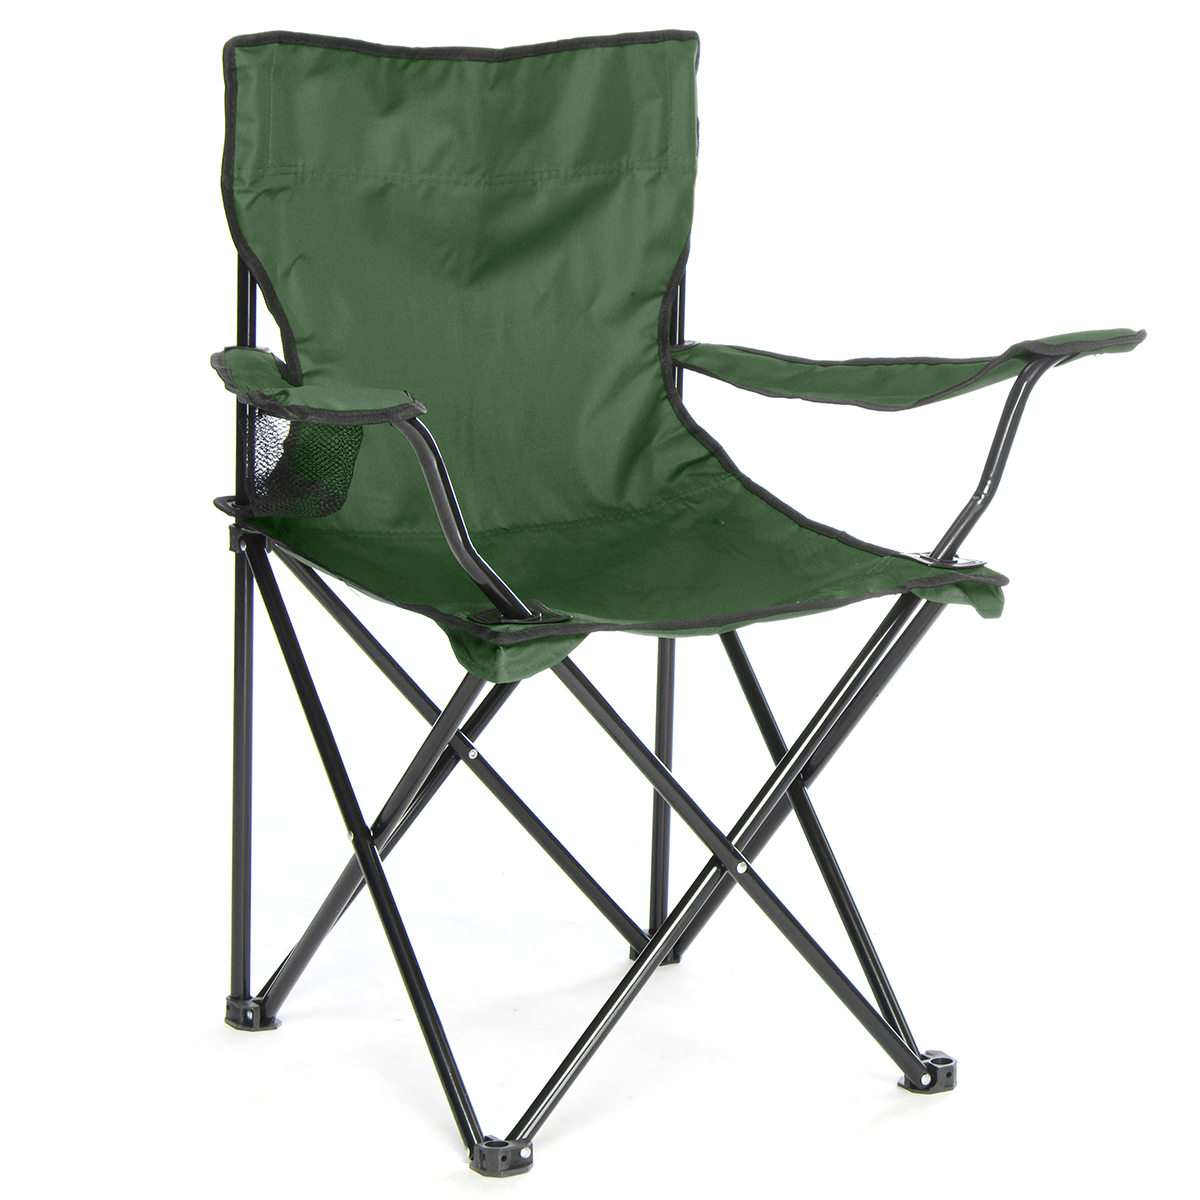 50x50x80cm Folding Camping Fishing Chair Seat Portable